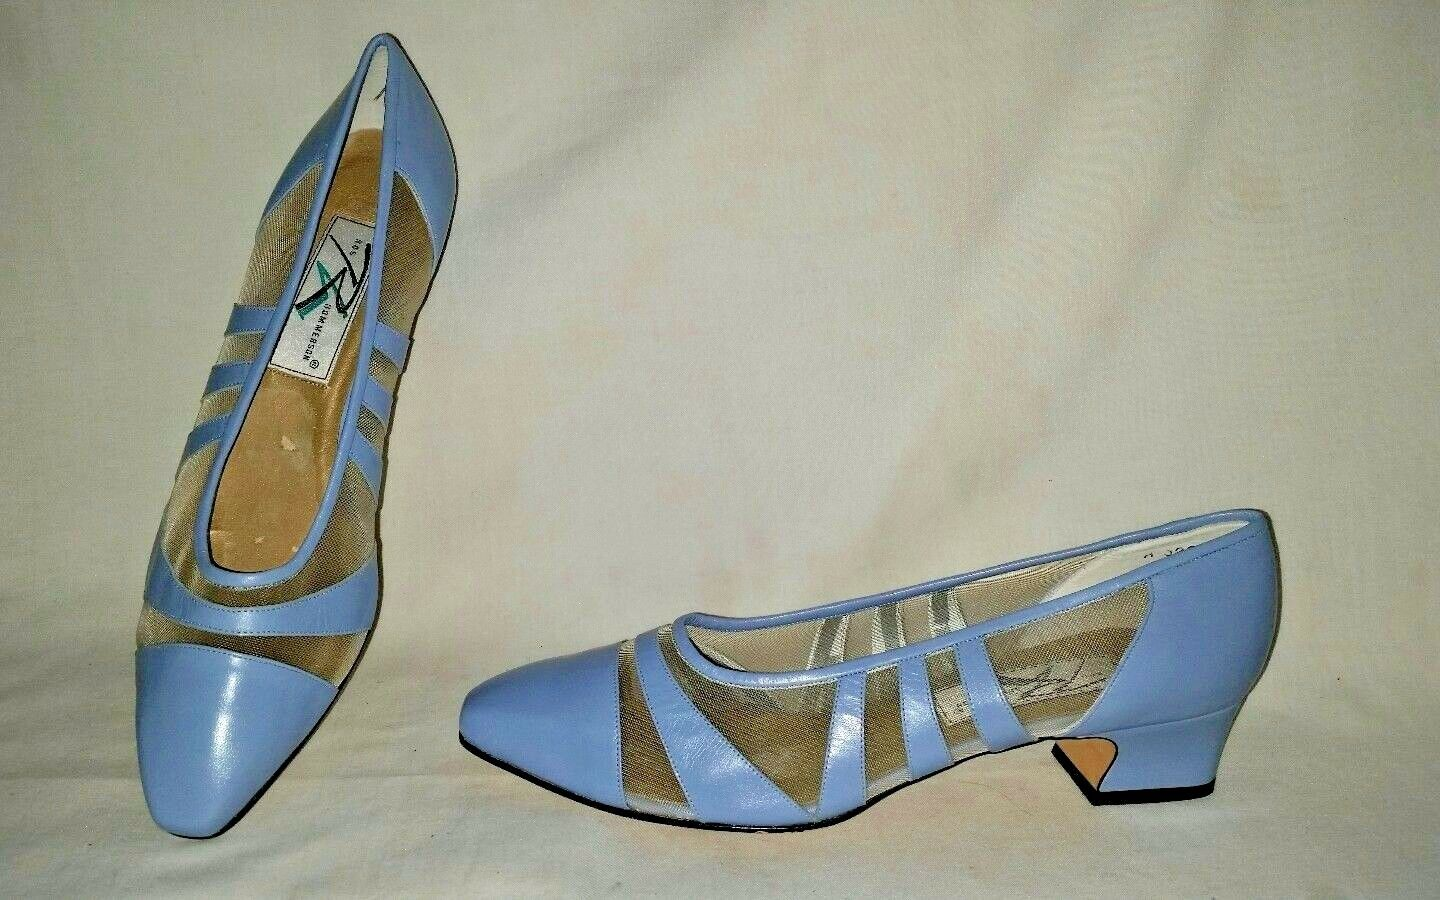 Fabulous ROS HOMMERSON Size 11 NARROW  Low Heel Pumps shoes Leather & mesh